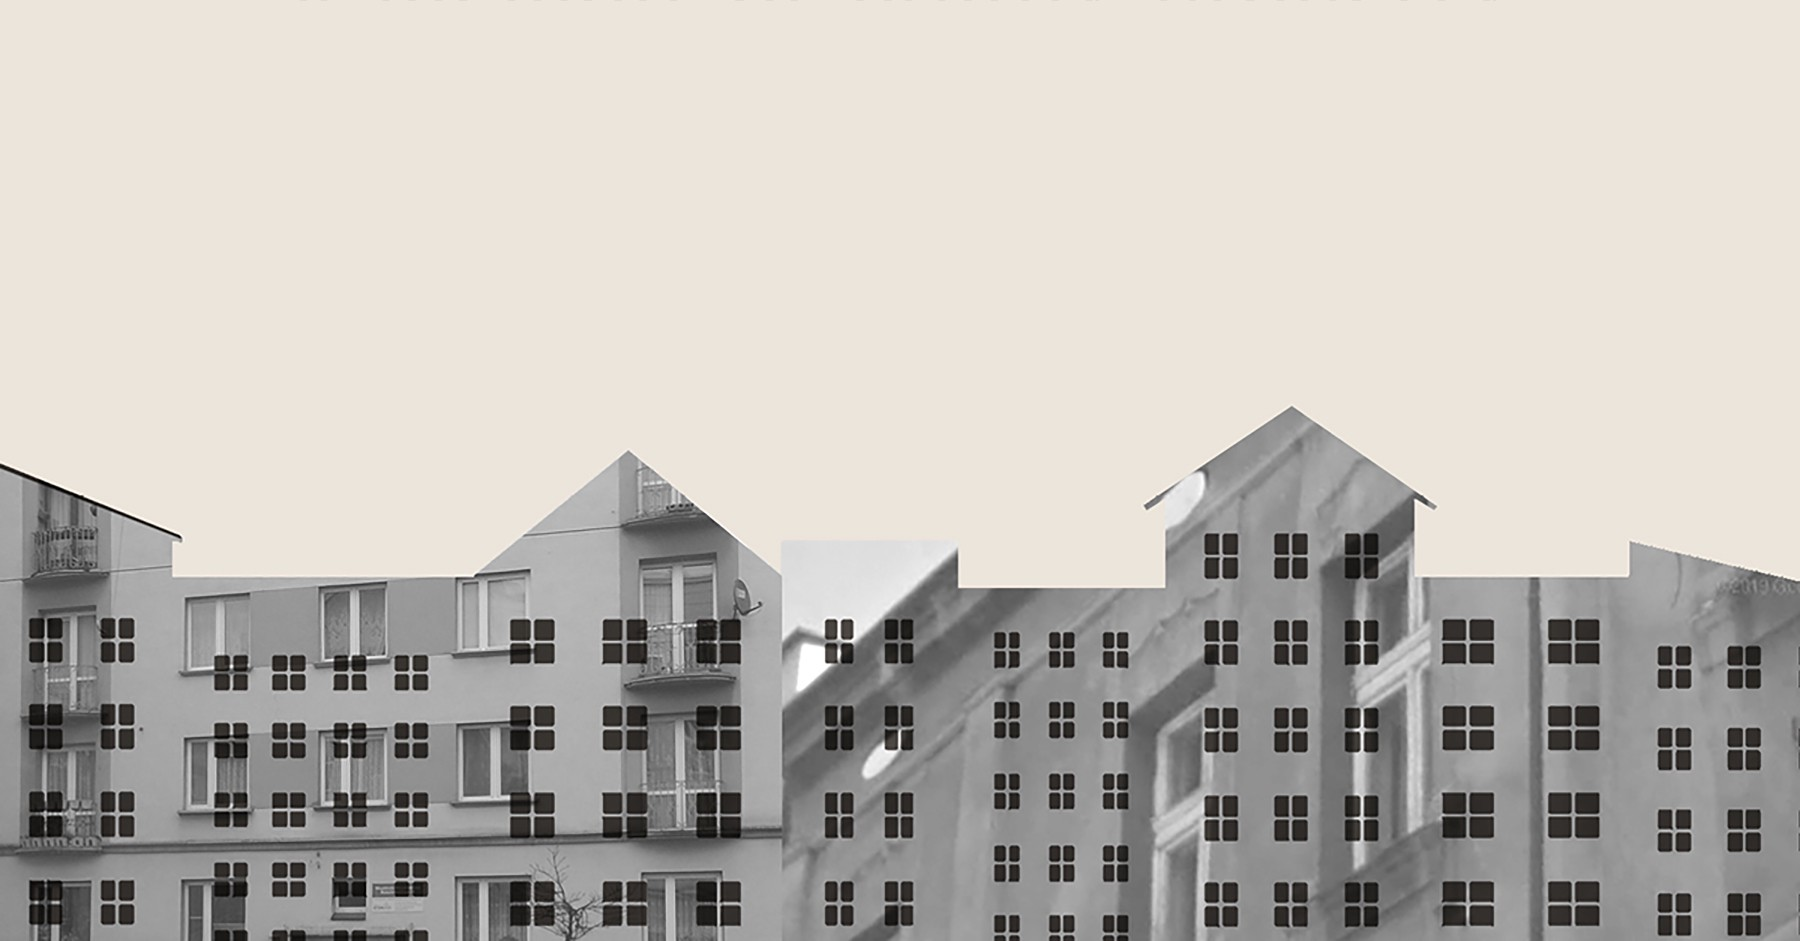 Book cover illustration of apartment buildings from the Scribe Book edition of Plunder: A Memoir of Family Property and Nazi Treasure by Menachem Kaiser